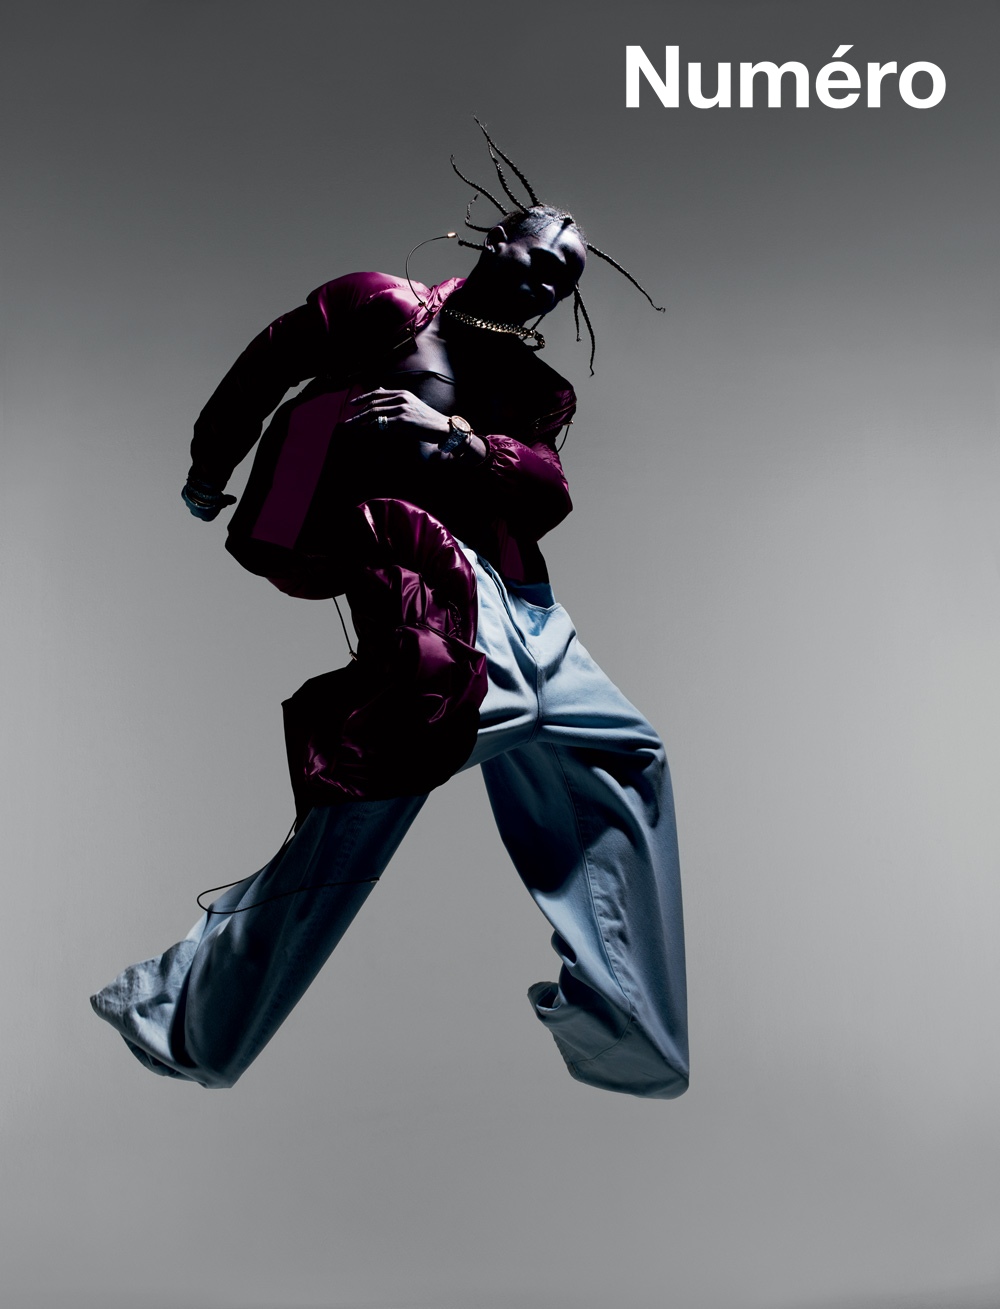 travis_scott_nick_knight_numero_homme_musique_kanye_west_4.png